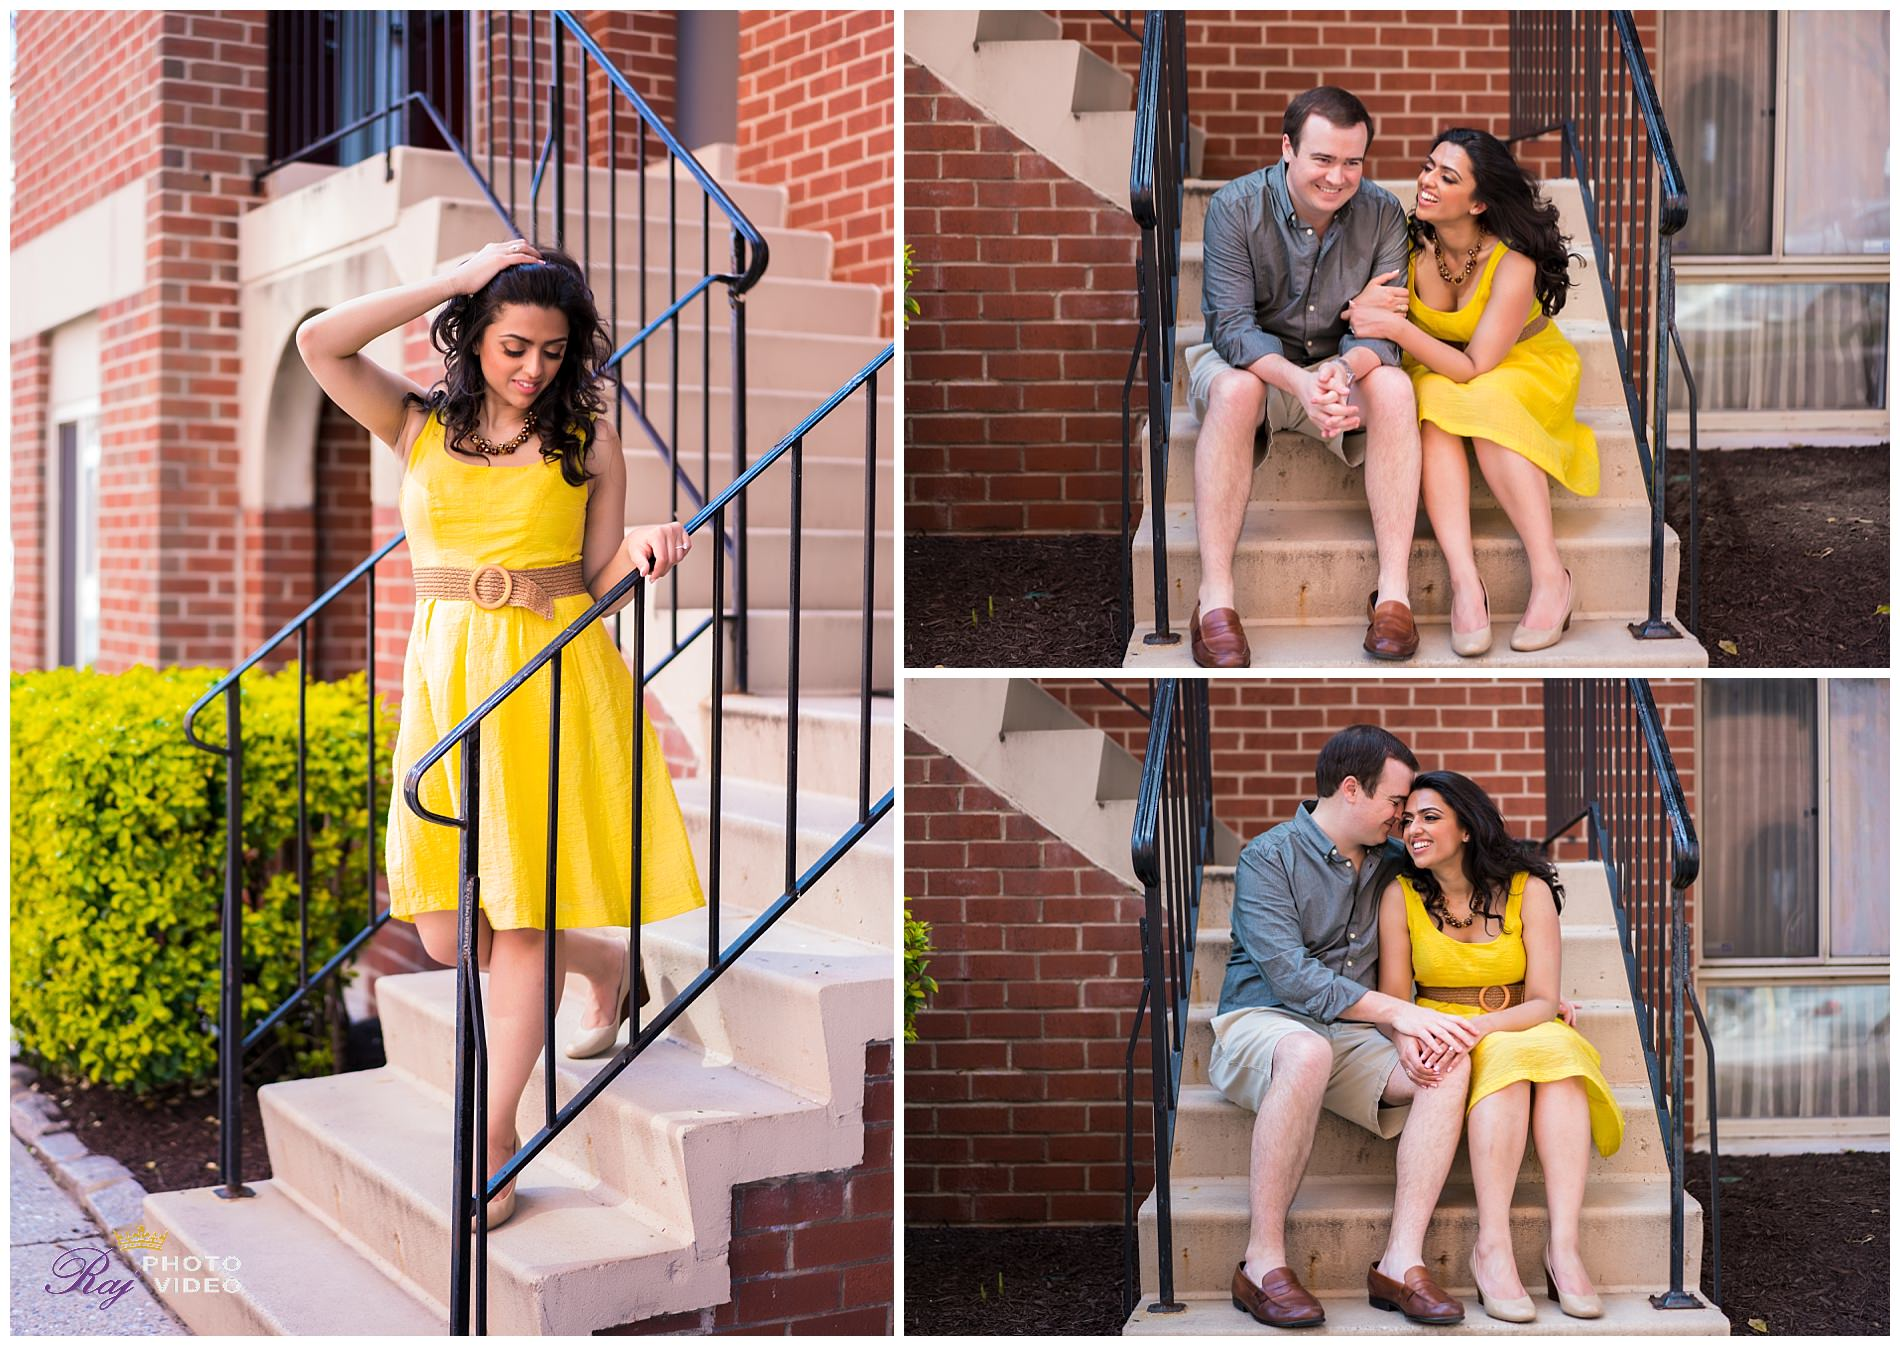 Baltimore-Maryland-Engagement-Shoot-Aditi-Peter-4.jpg